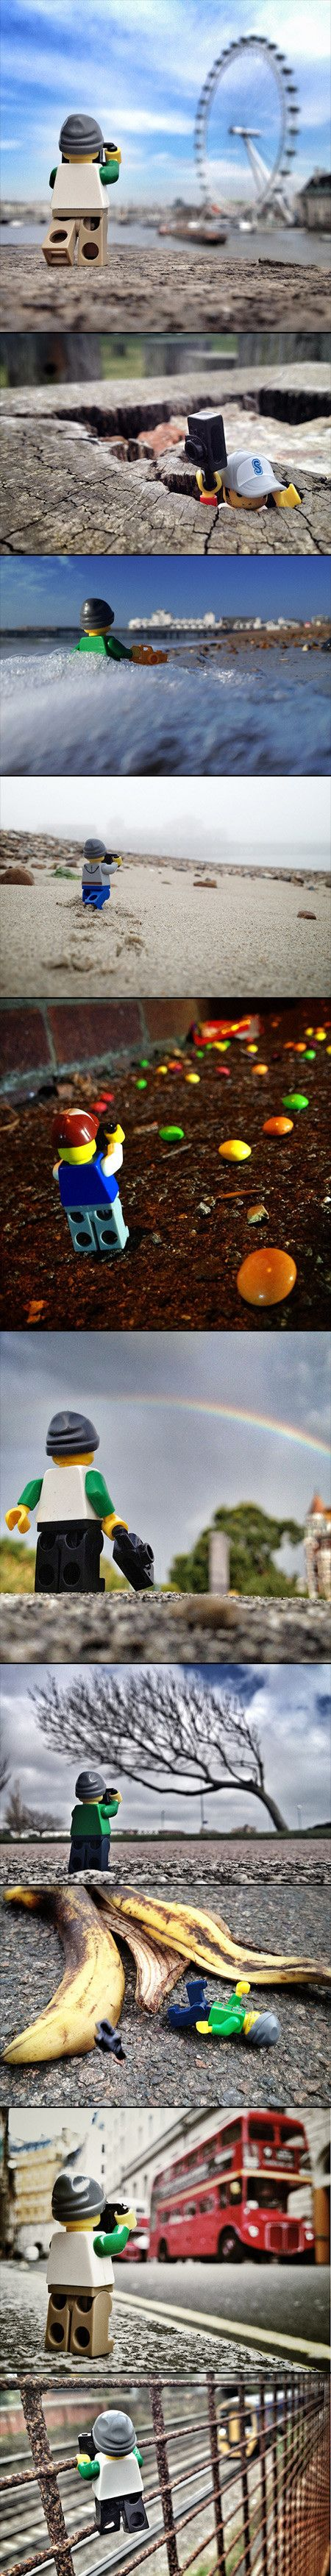 10 Creative Images That Document the Life of a LEGO Photographer - TechEBlog